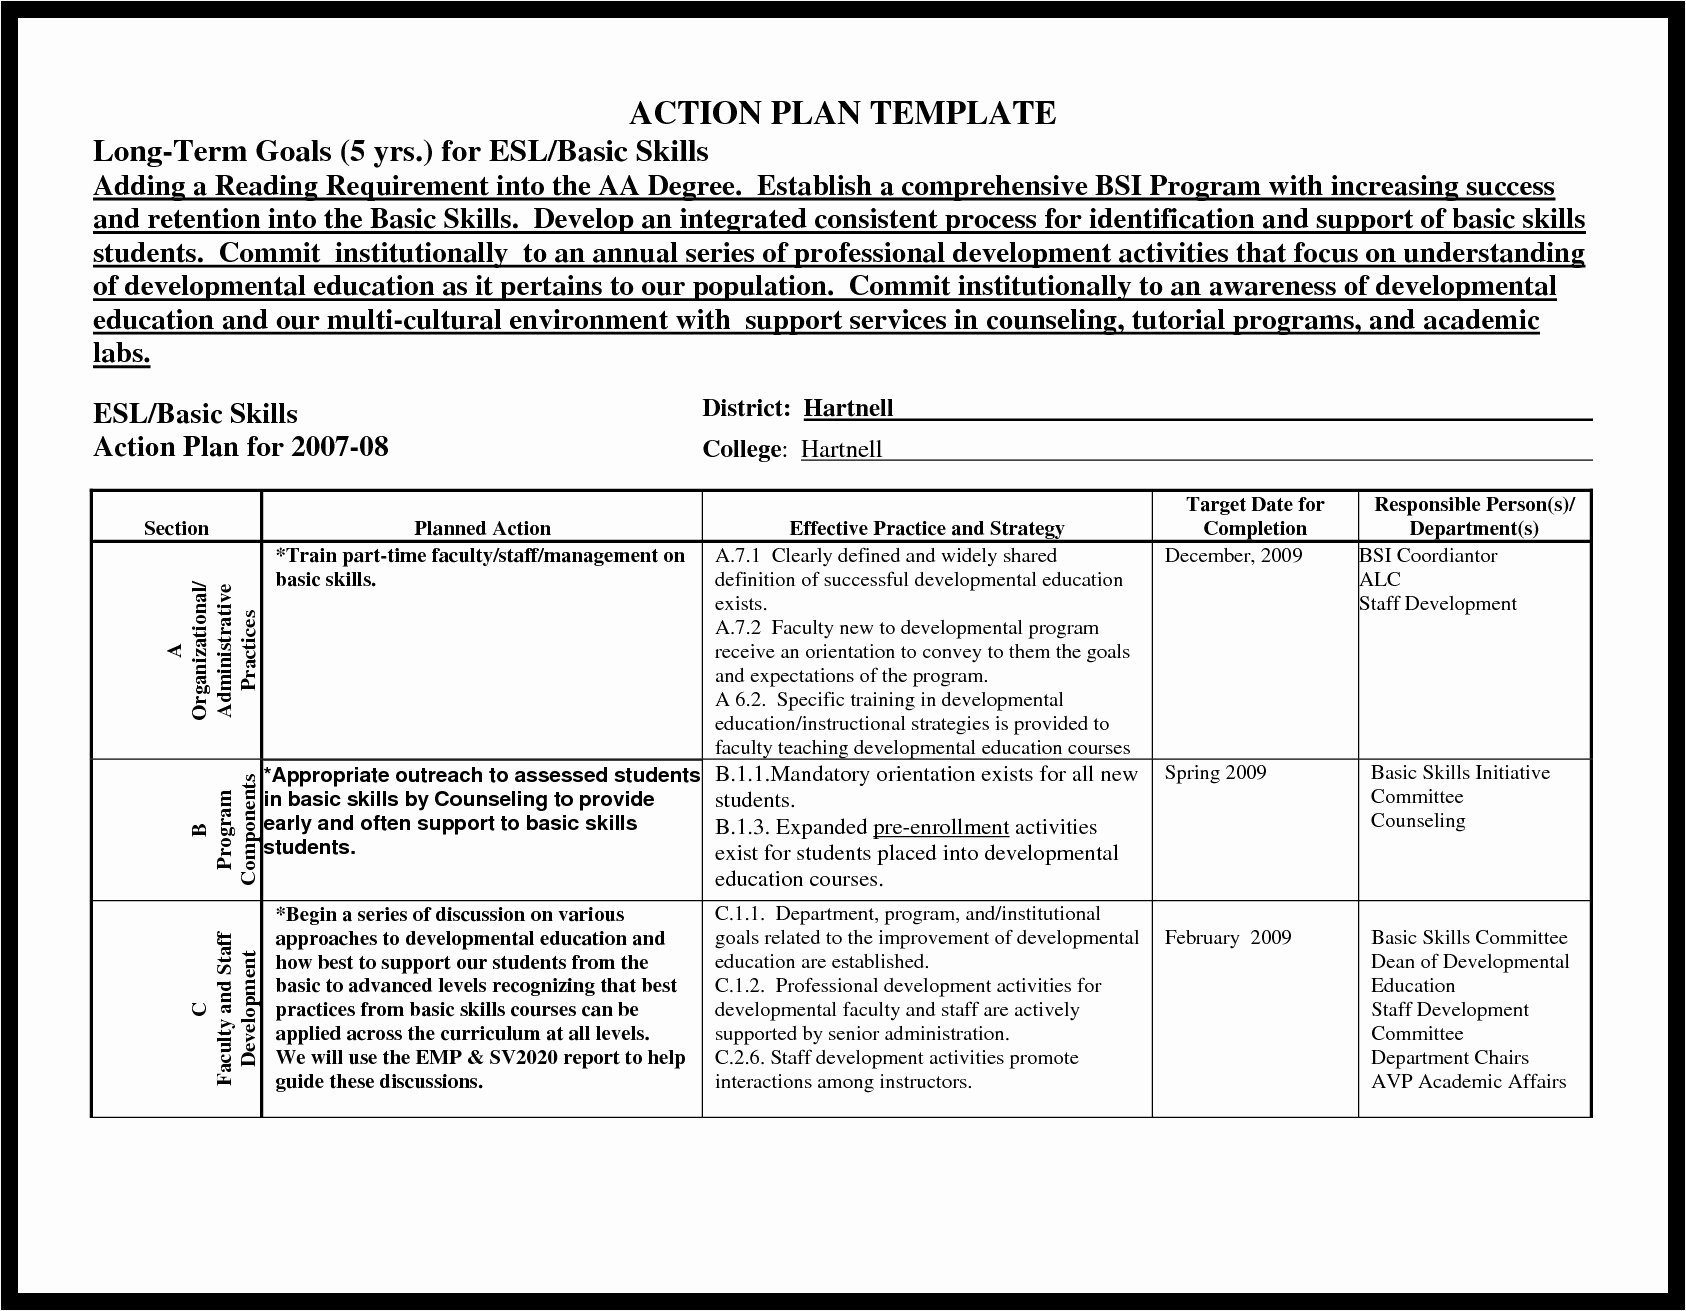 Sample Action Plan Template Fresh 30 60 90 Day Sales Plan Template Free Sample New Action